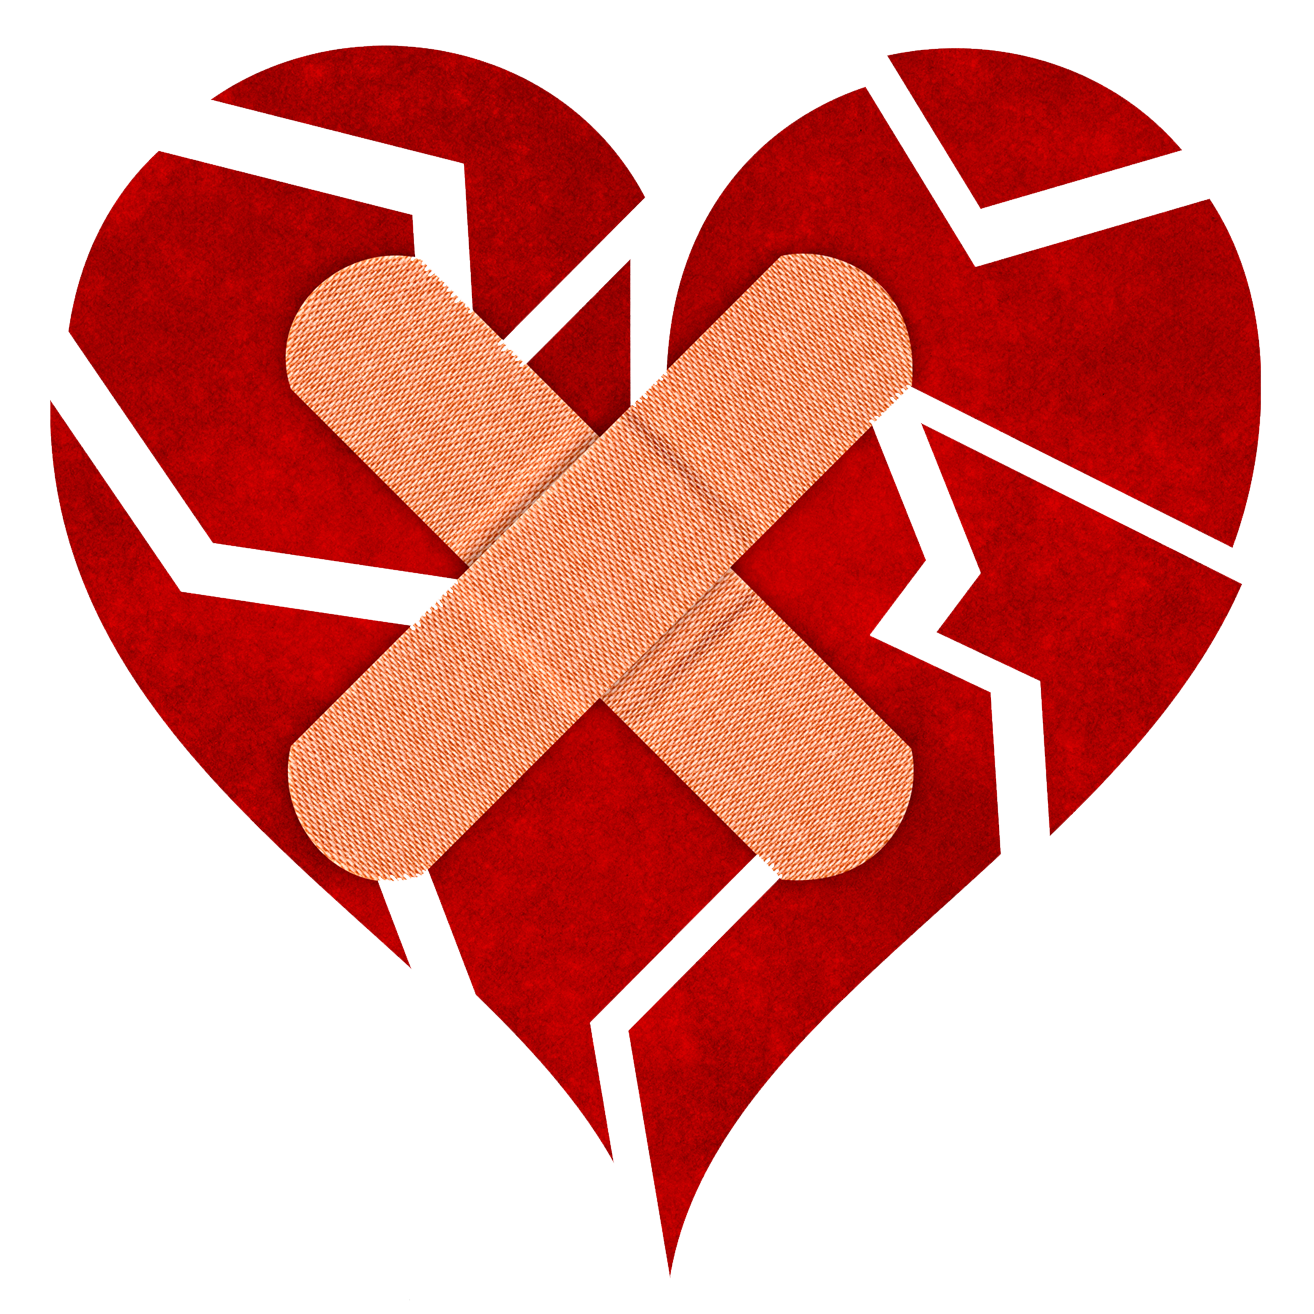 Free Download Of Broken Heart Icon Clipart